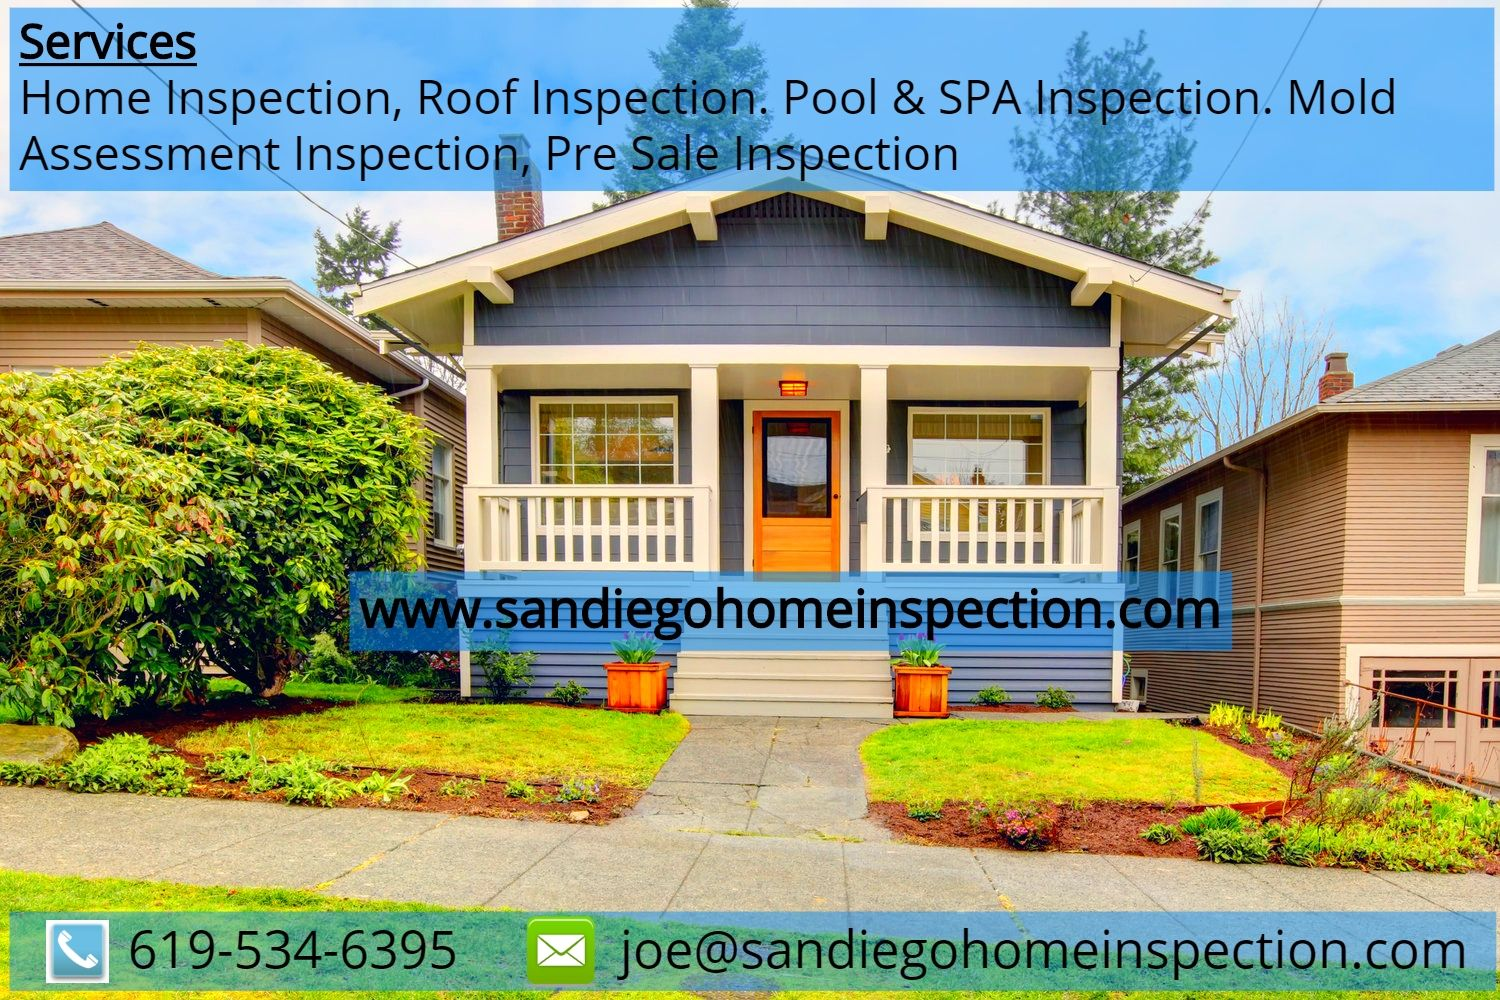 As A Real Estate Inspection Group In San Diego San Diego Inspection Company Focused On Customers And Looking For Ways Of Impro Home Inspection